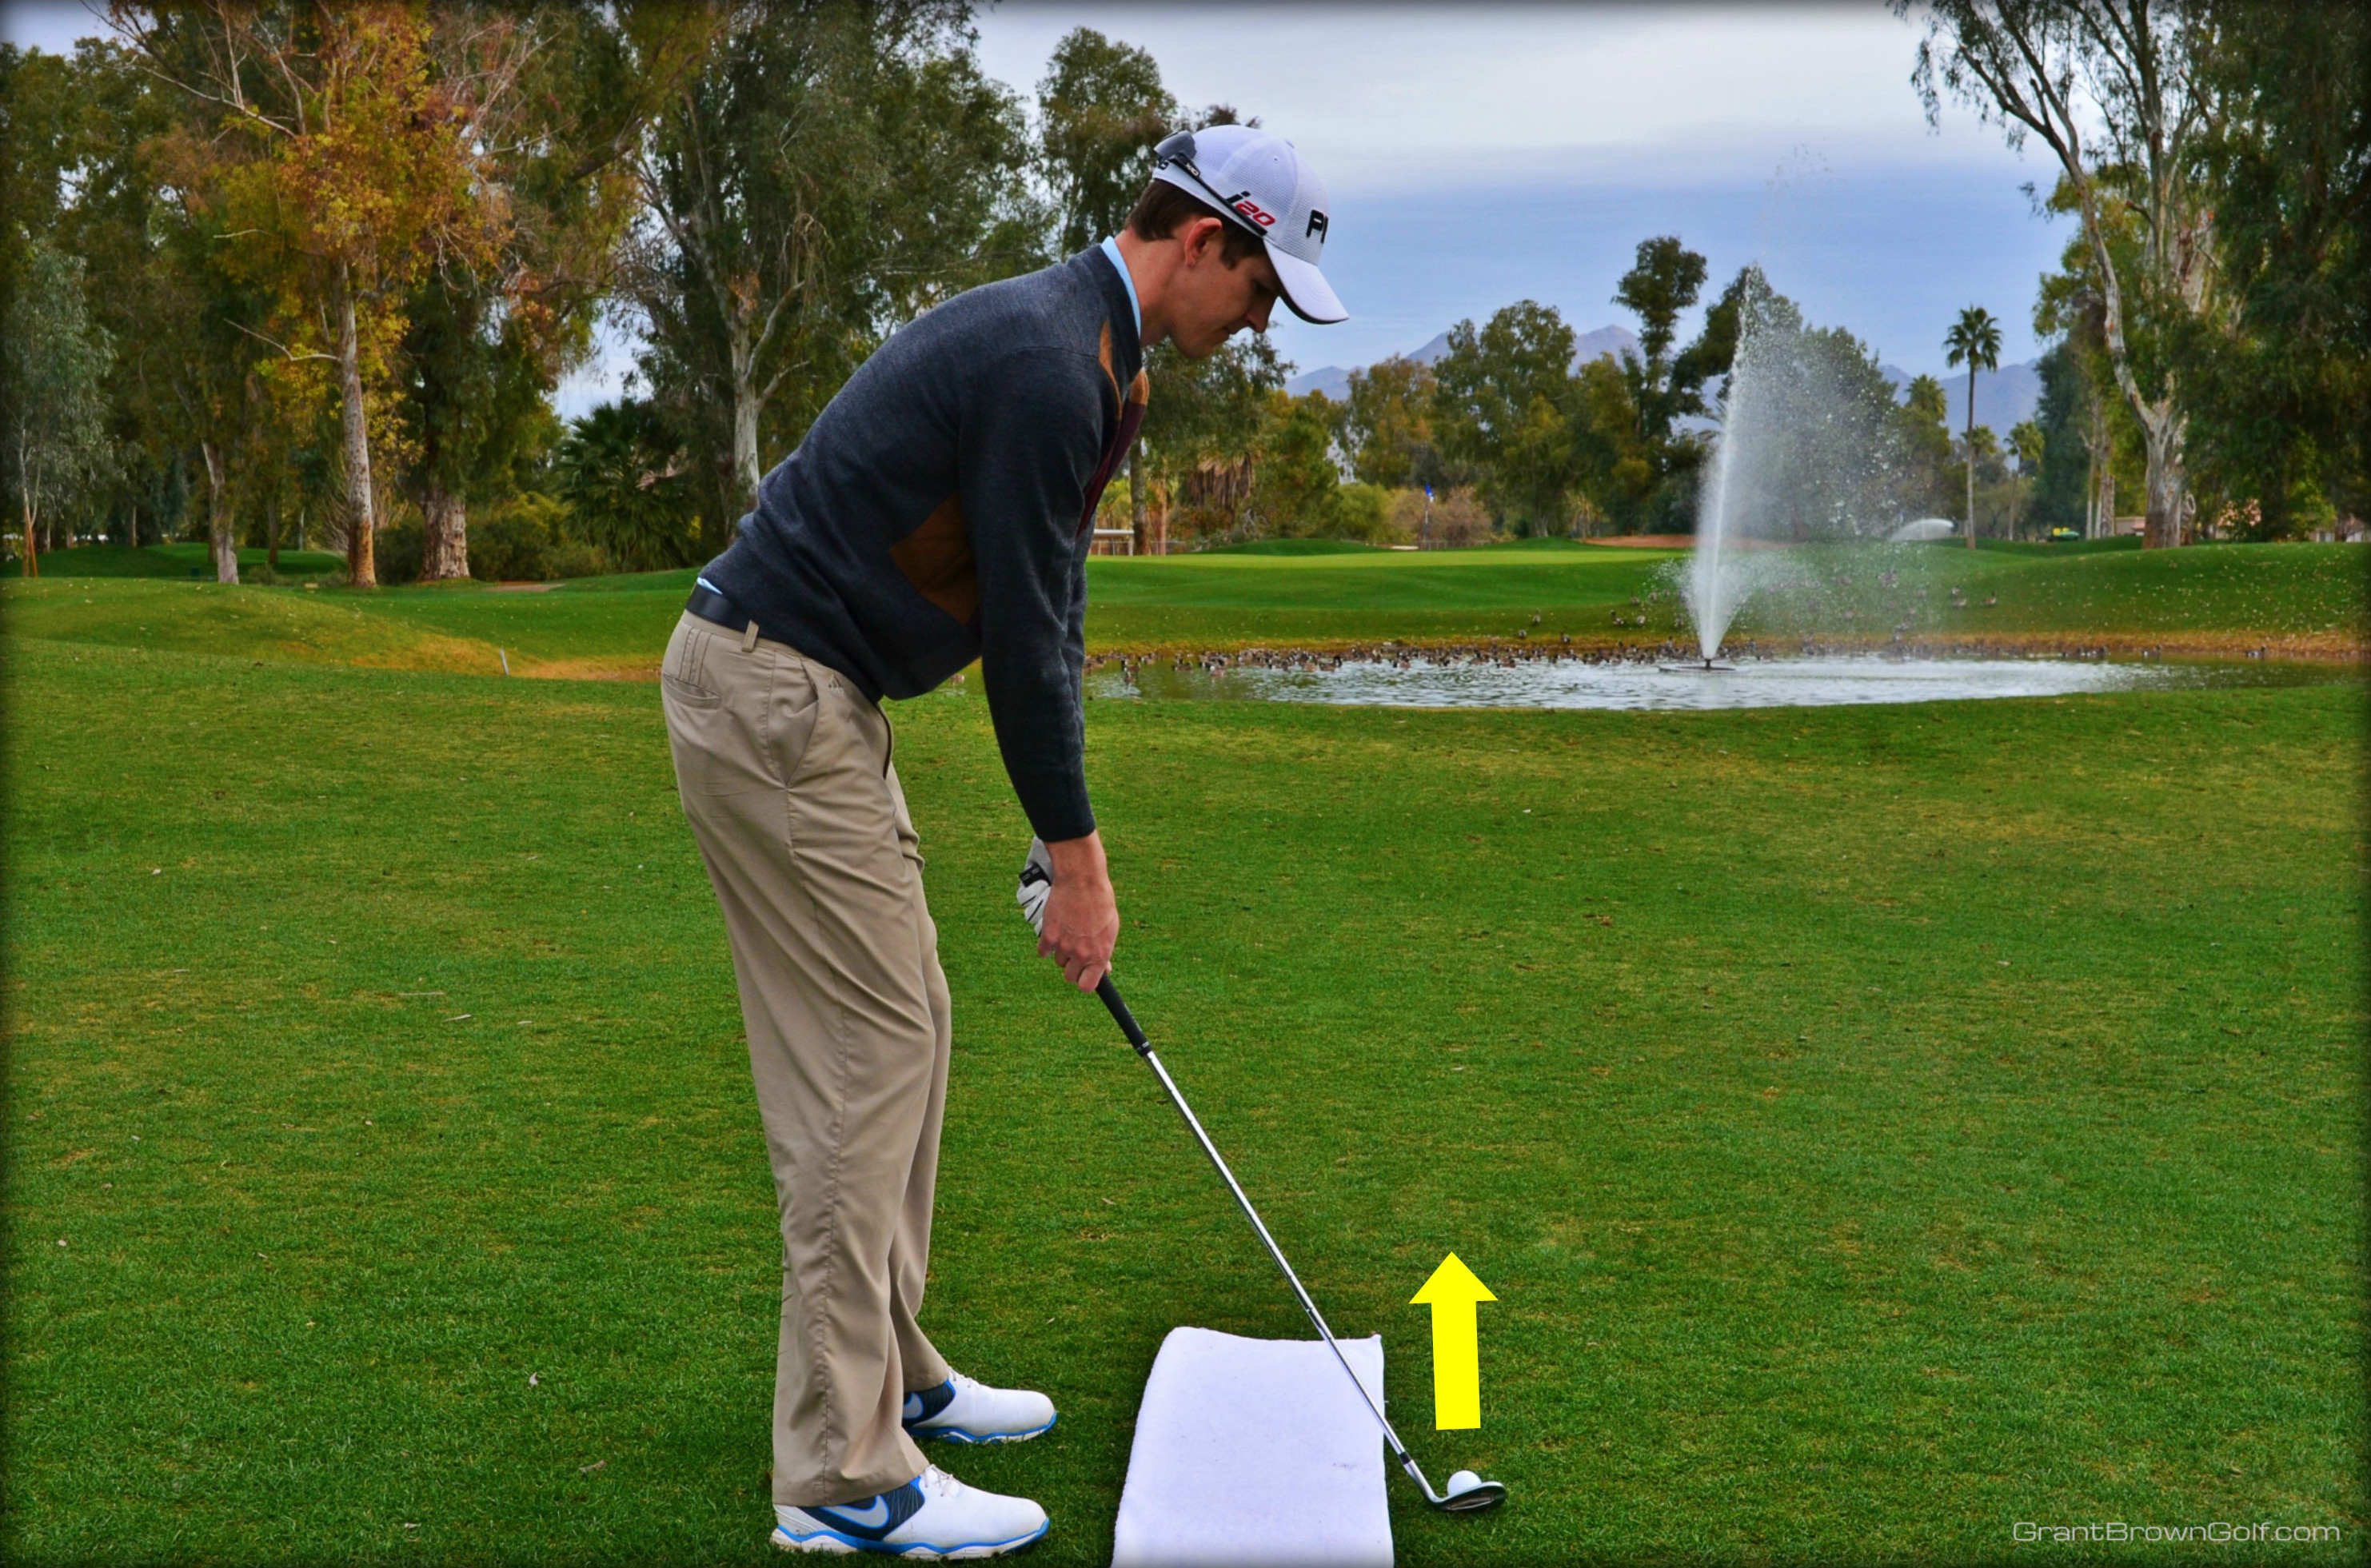 hone gadgets lasers golf show training play uses distance aids a your swing garymccormick skills green display laser and line two red help to better device one the you putt